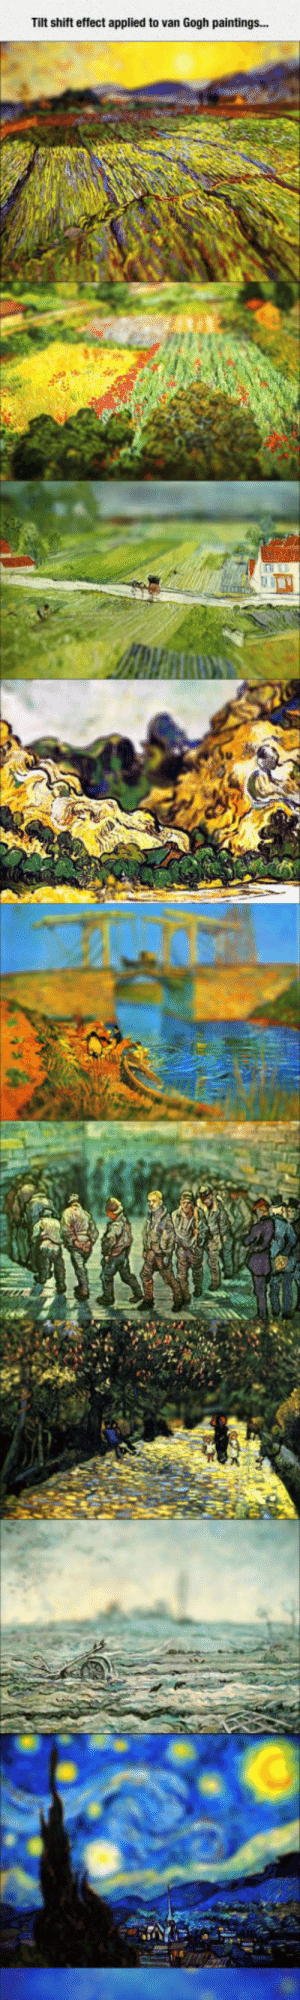 Club, Paintings, and Tumblr: Tilt shift effect applied to van Gogh paintings... laughoutloud-club:  Van Gogh's Work From Another Perspective